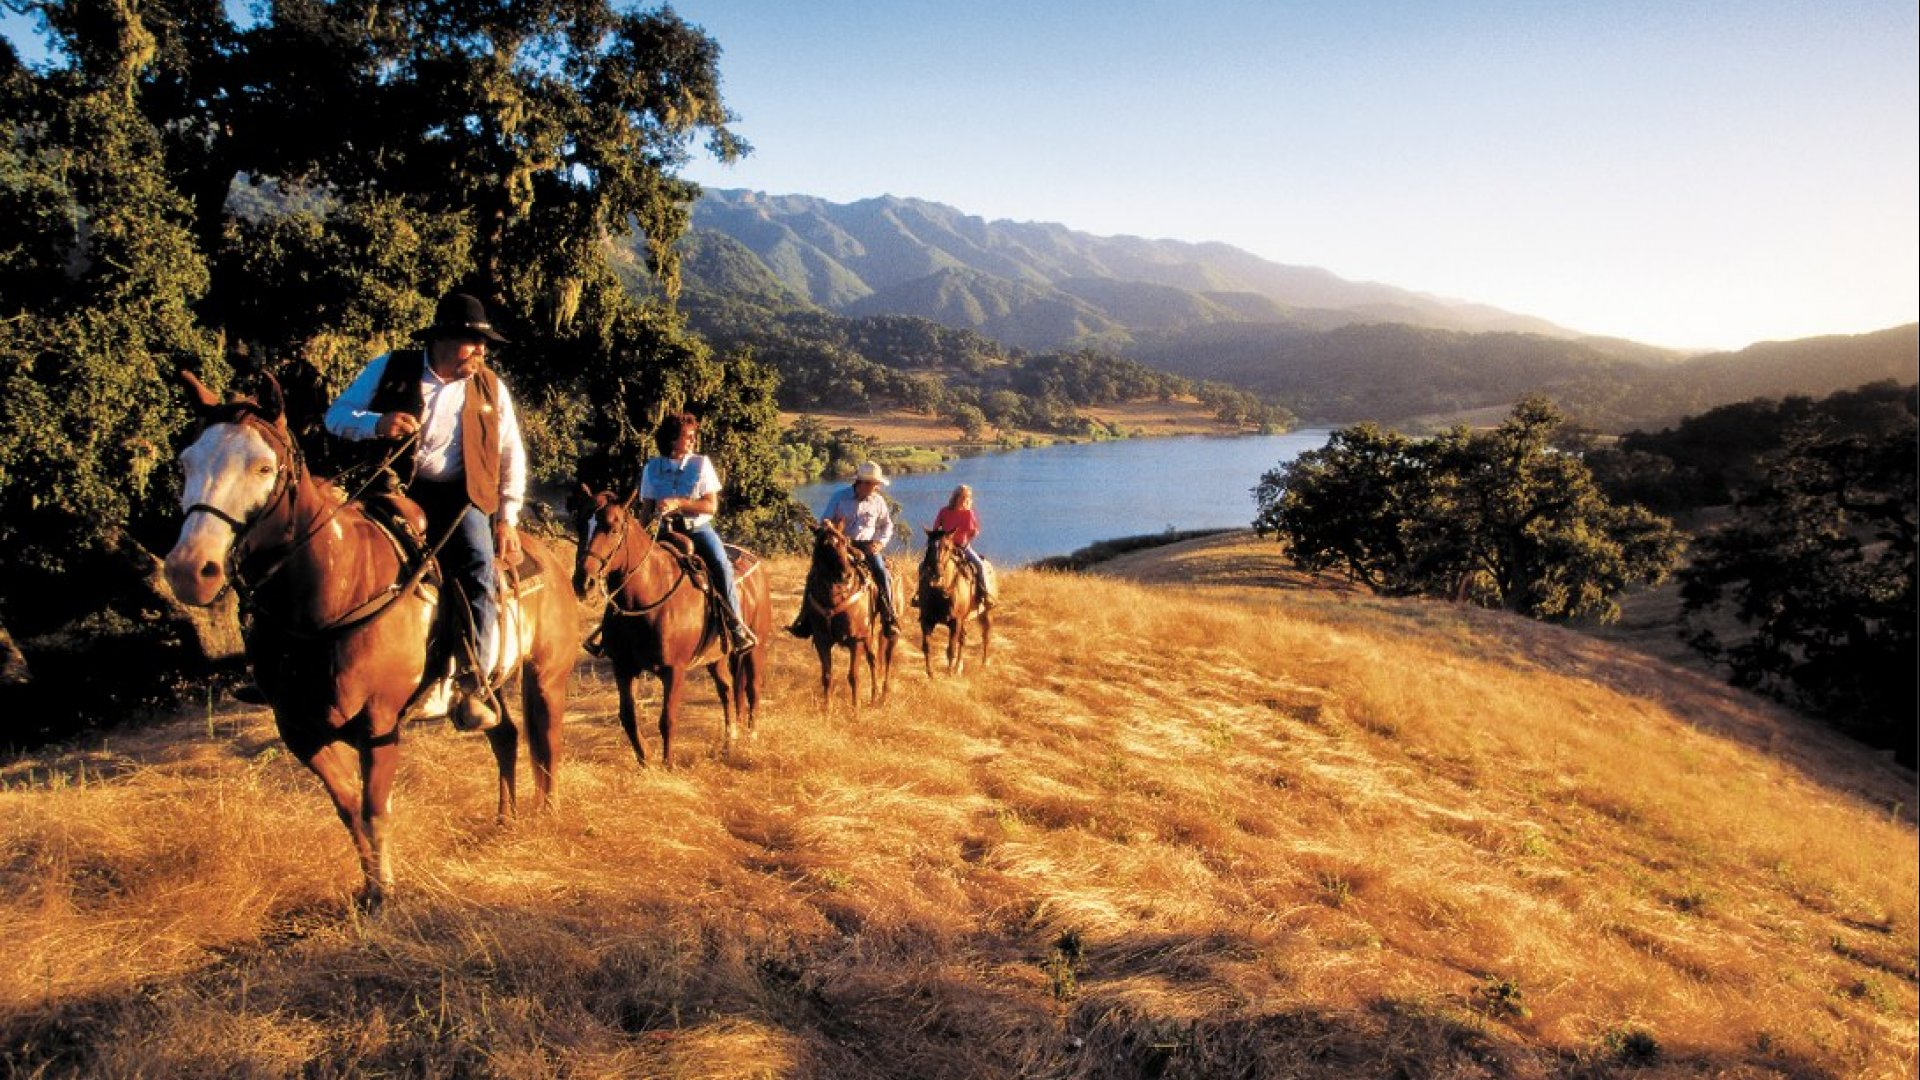 Solvang Meetings - Enjoy Horseback Riding